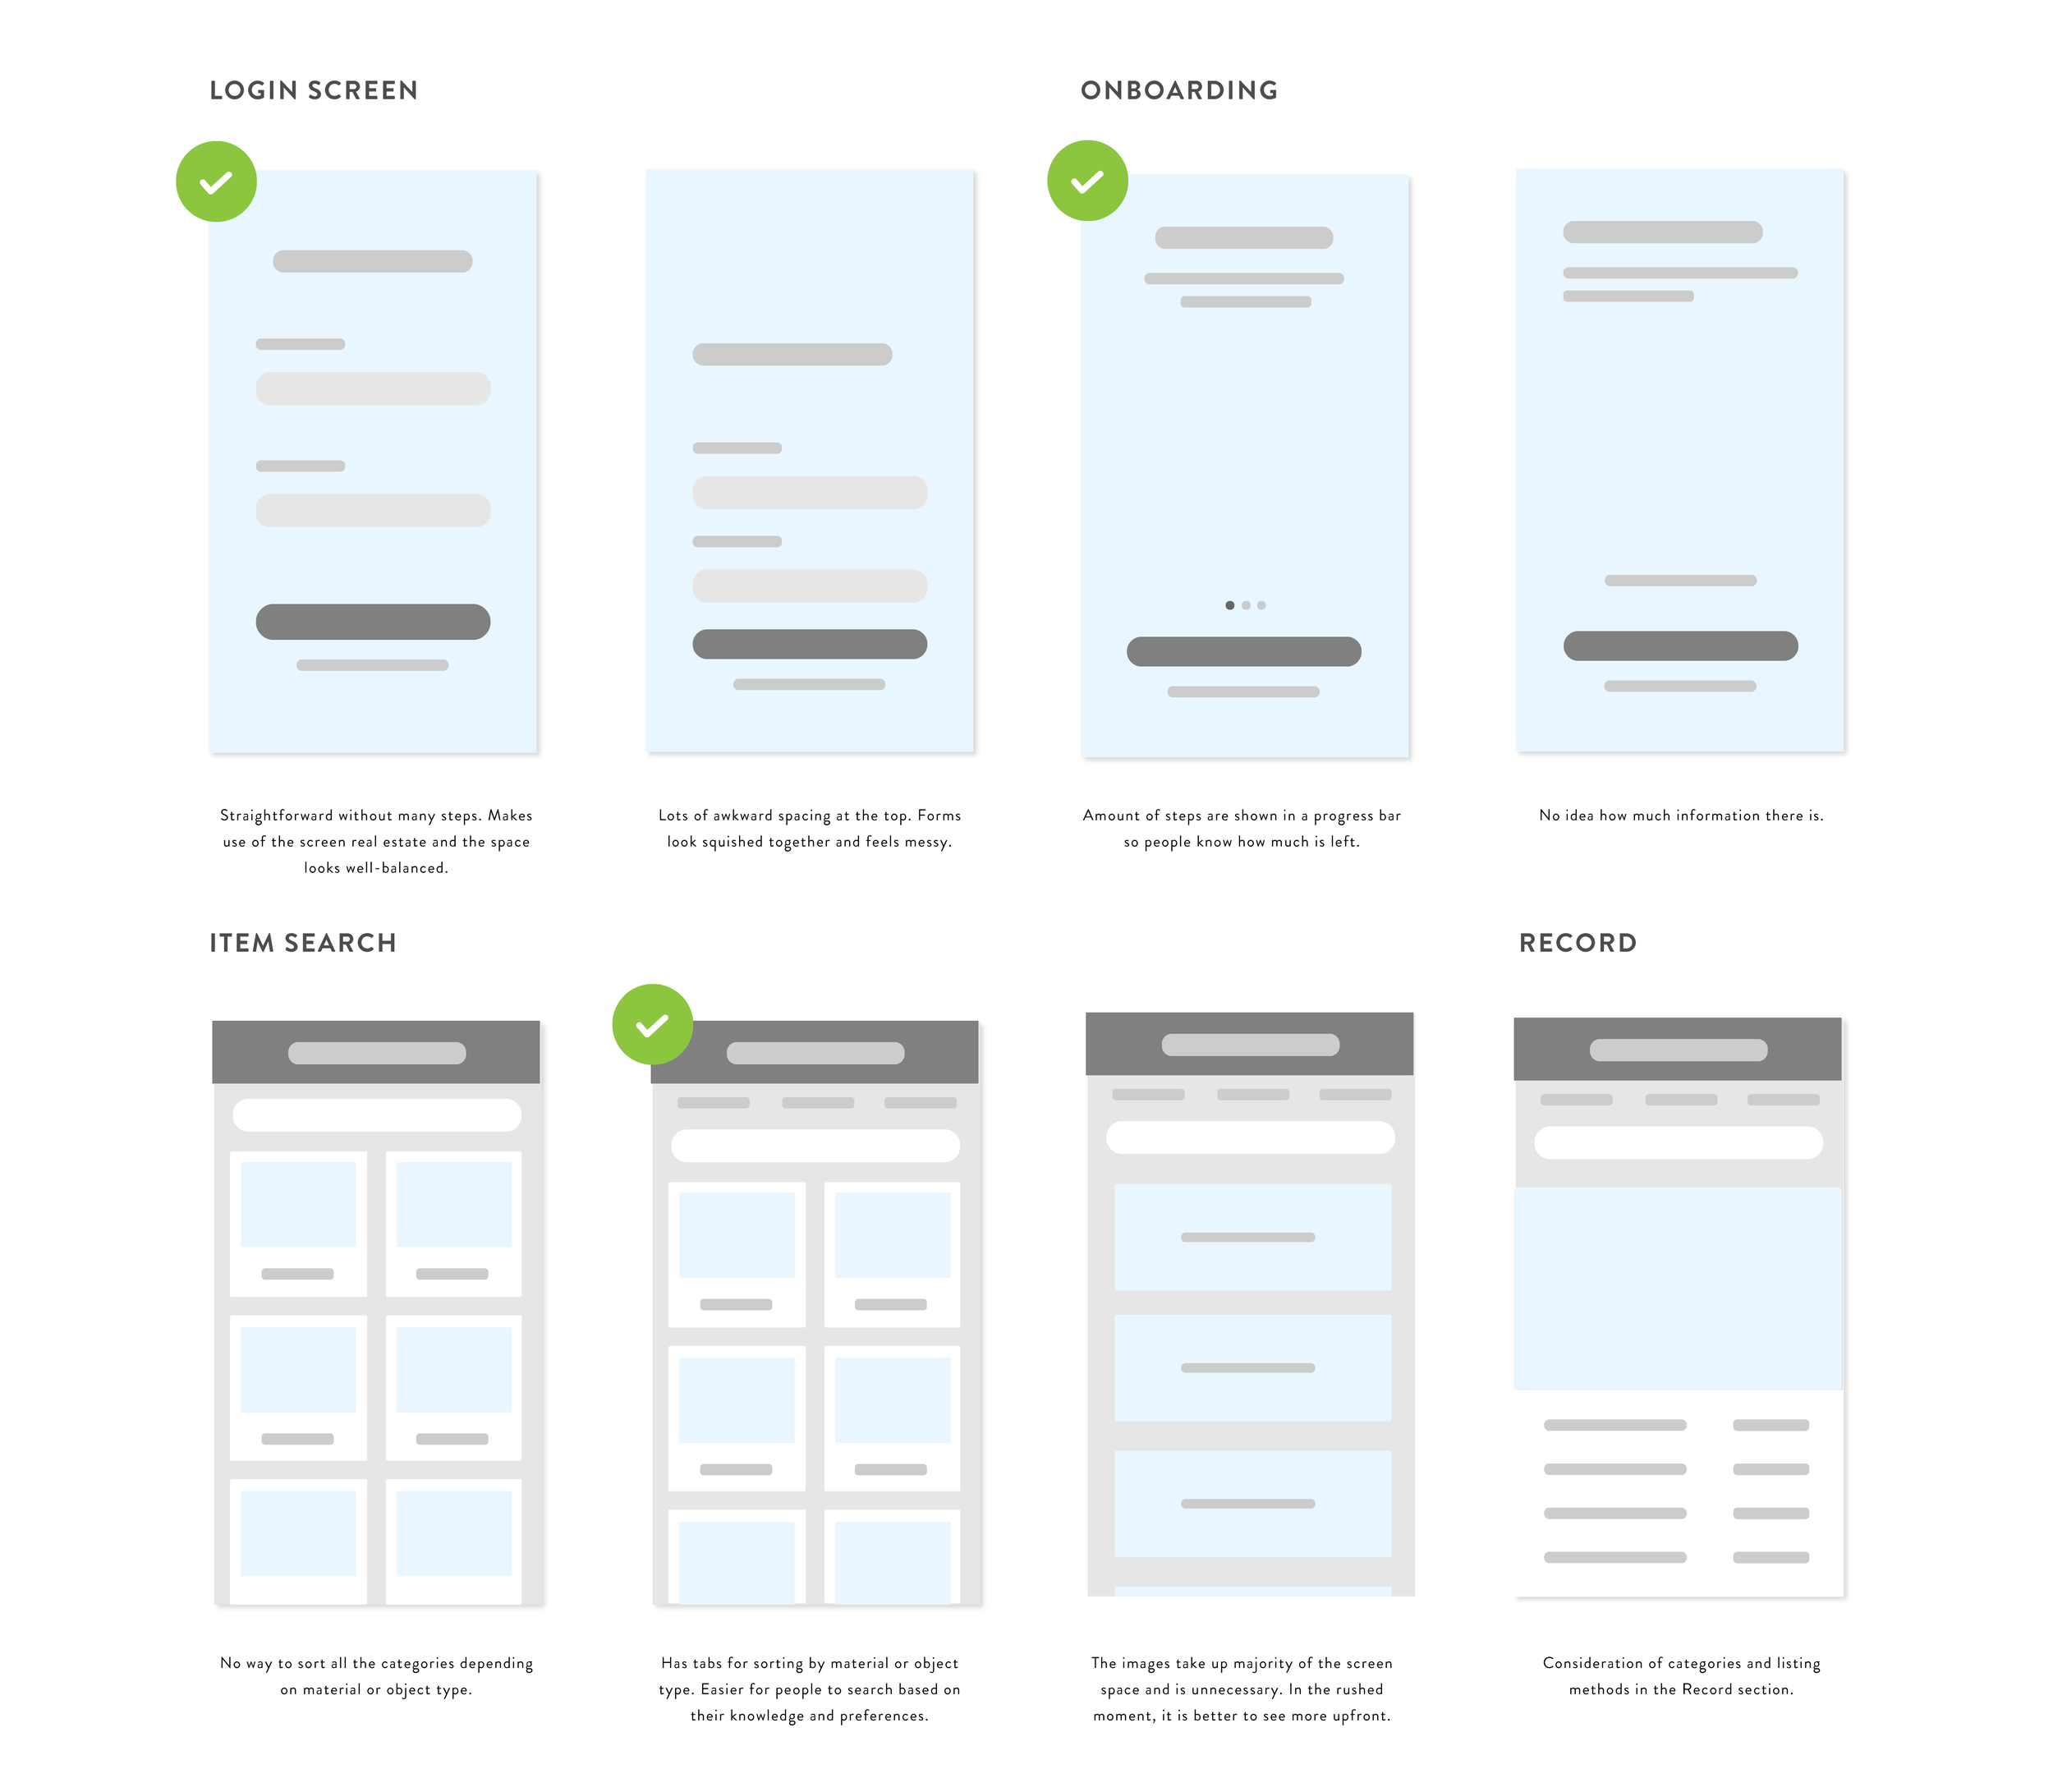 Low-fi mockups for initial layout variations, tested with potential users